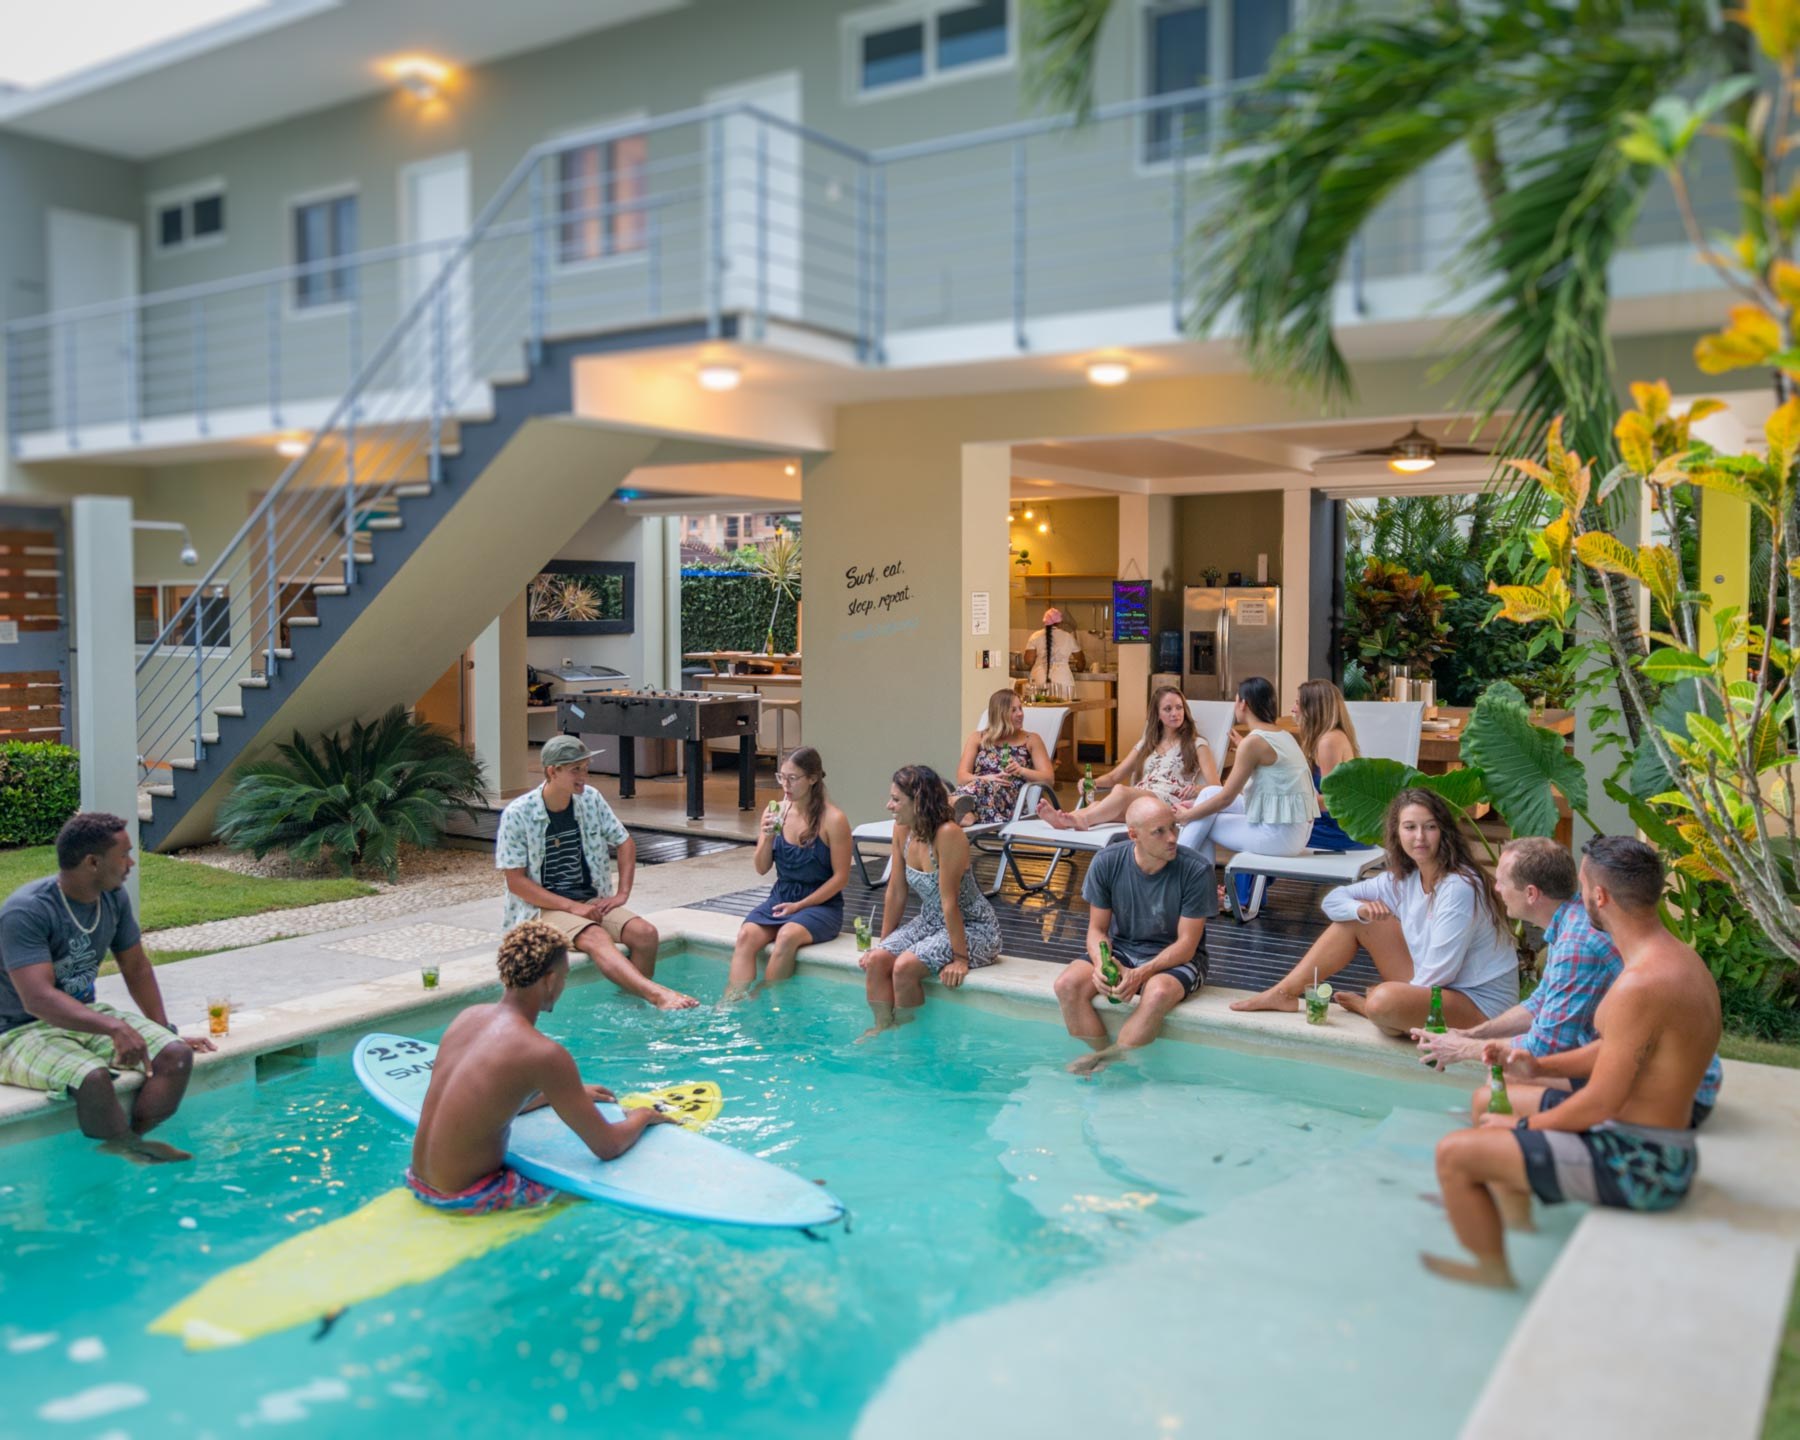 Swell Surf Camp opens